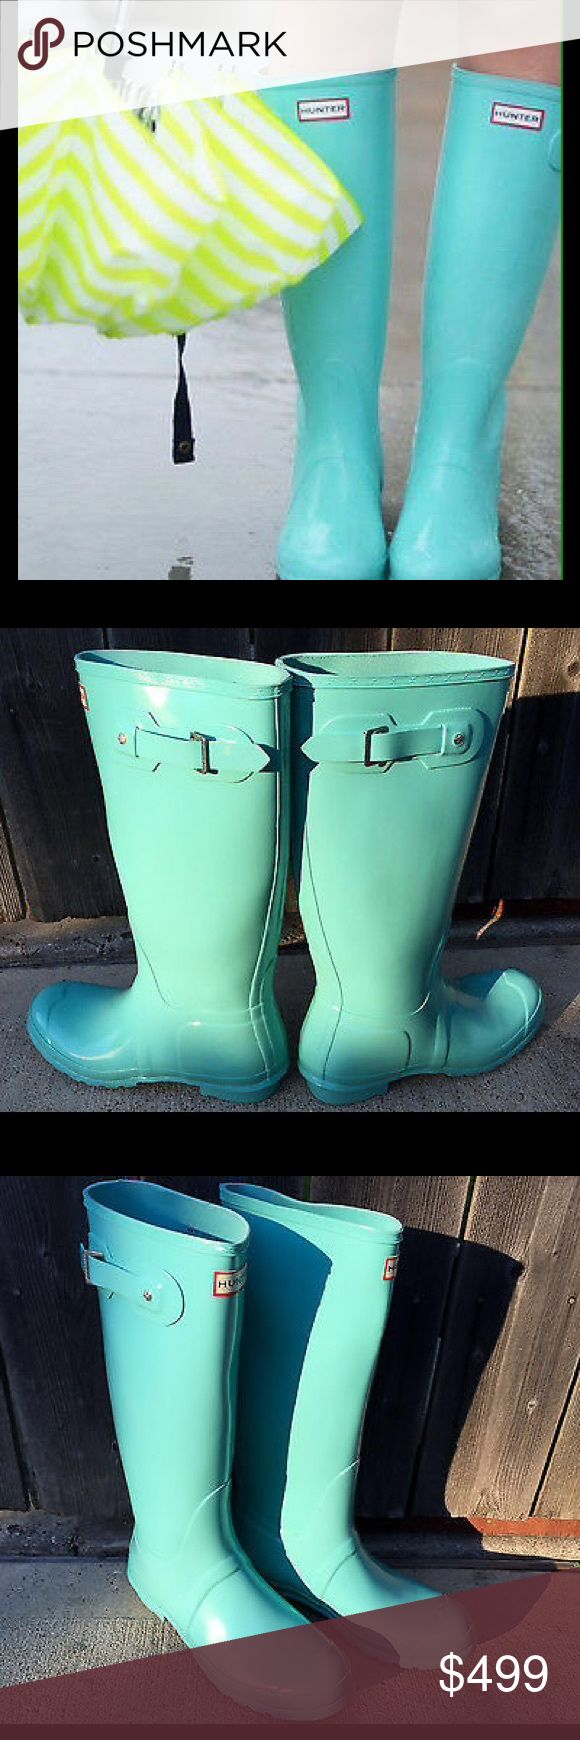 Ultra Rare Hunter Tiffany Blue Rain Boots Size 11 From my treasure chest - Probably the only Hunter Tiffany Blue boots in US size 11 / EU 43 for sale in the world. Photos 2-4 are the actual boots. In unworn and perfect condition. Please let me know if you see another pair like these. Good luck. Hunter Boots Shoes Winter & Rain Boots